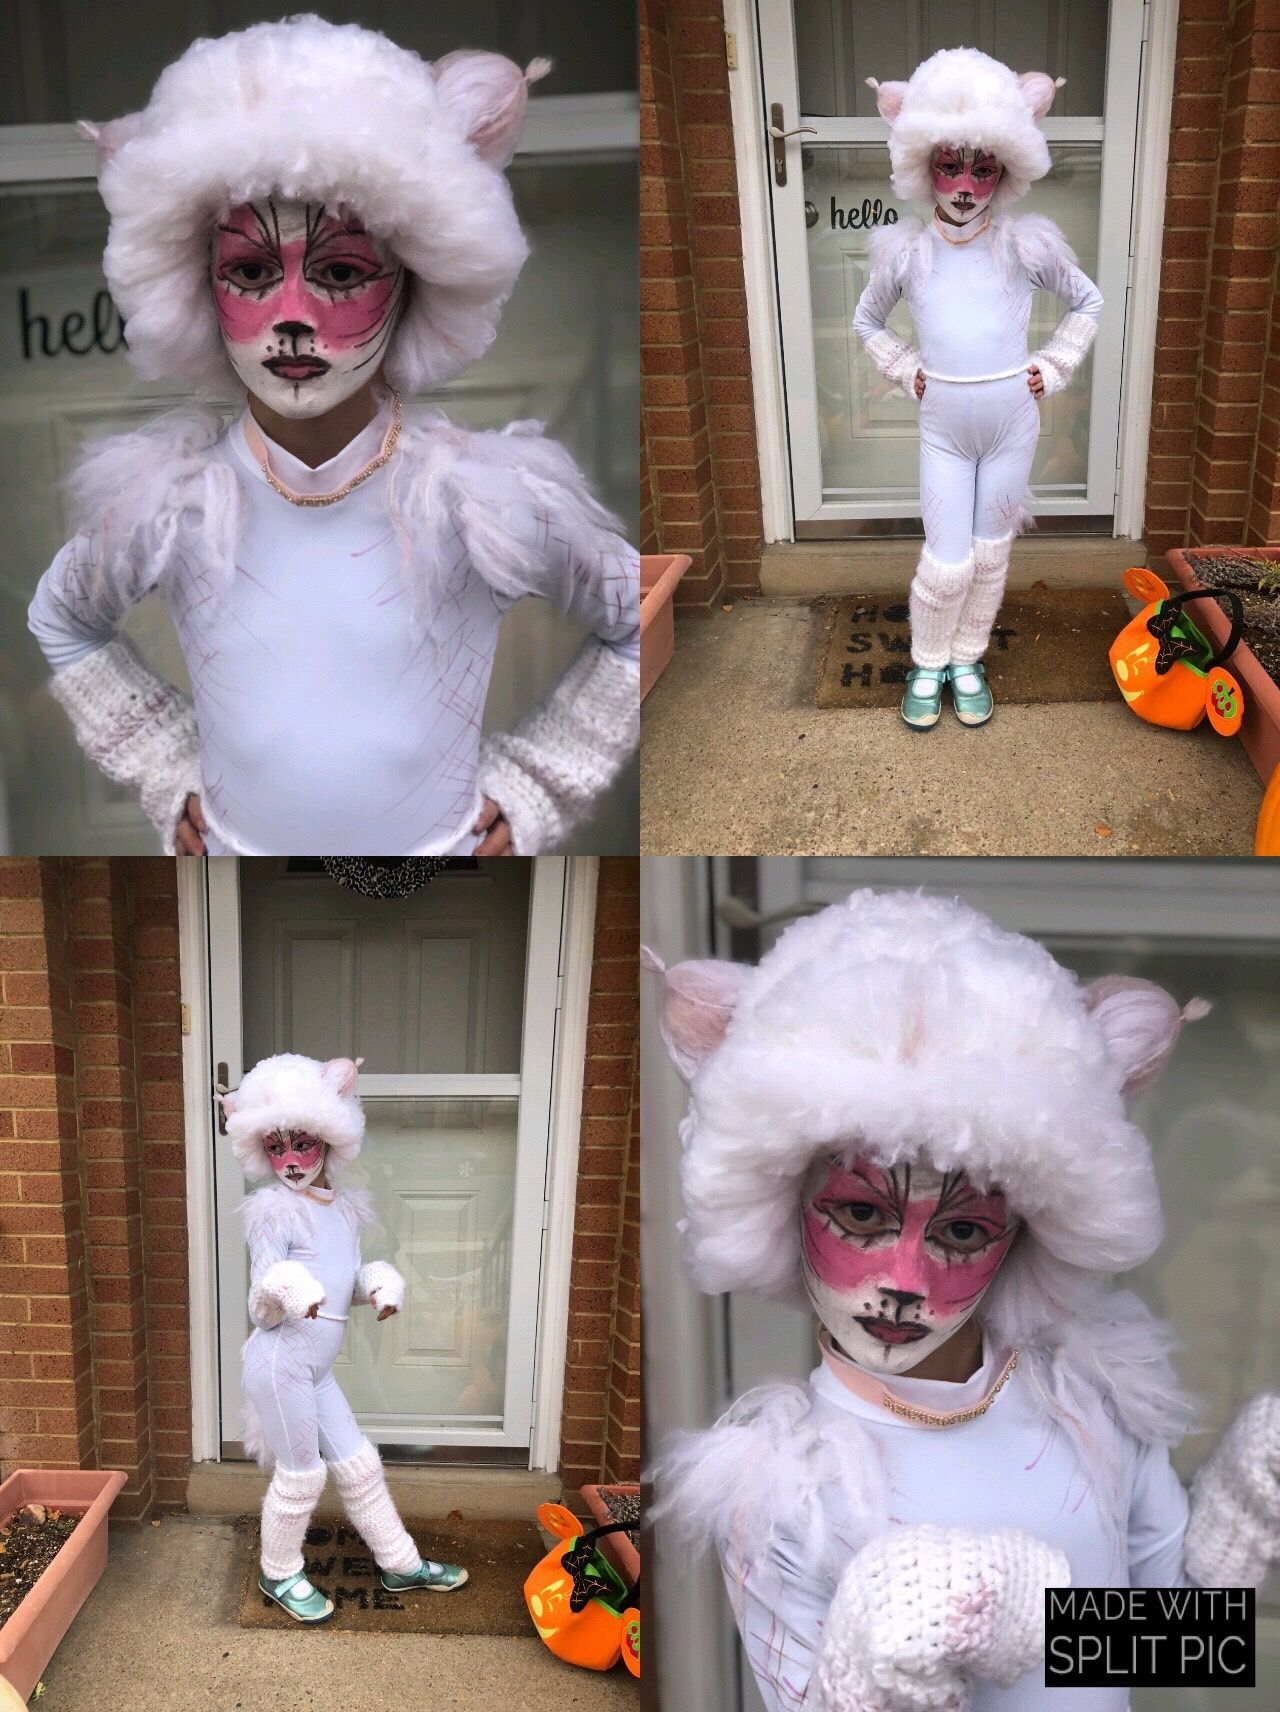 Victoria The White Kitten From Cats The Musical Halloween Costume Halloween Costumes White Kittens Costumes